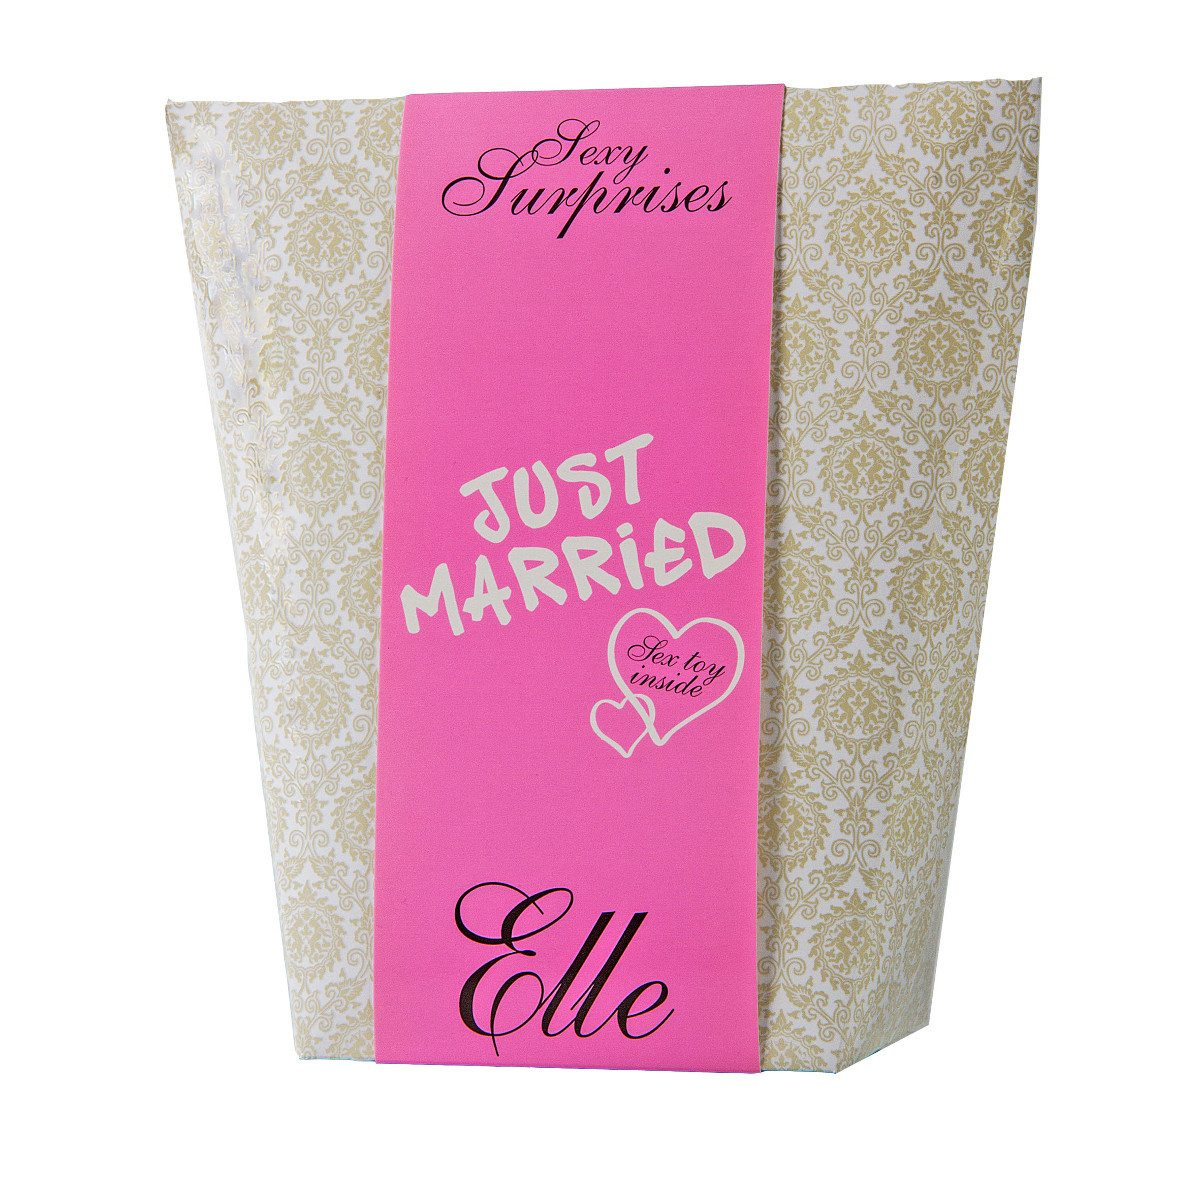 Pochette surprise sexy - Just married